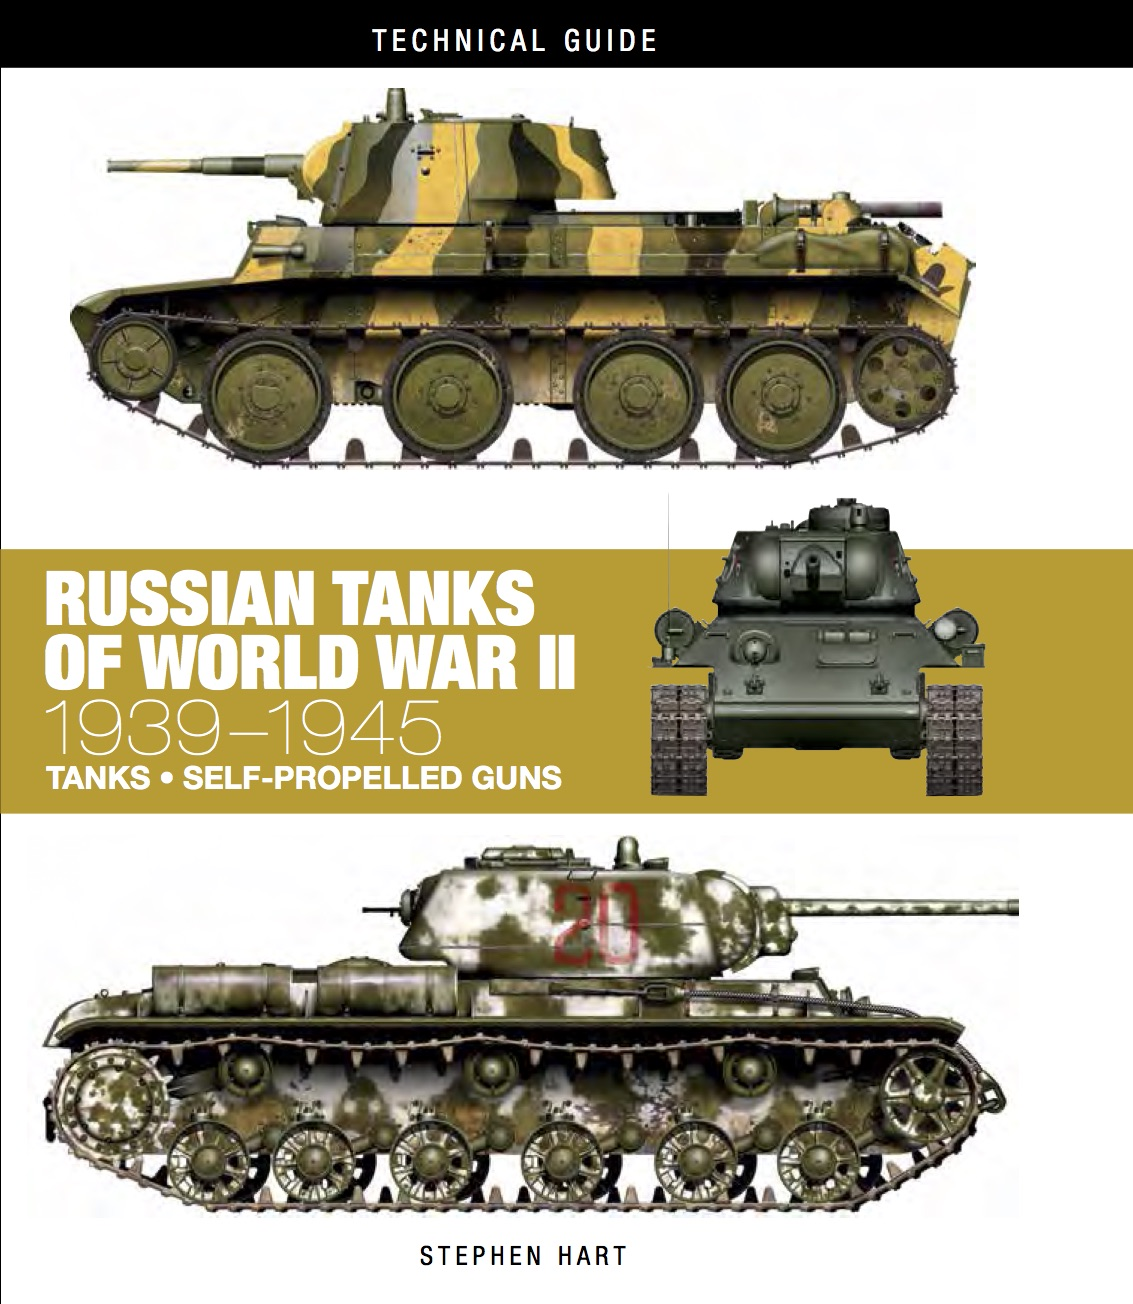 Russian Tanks of World War II: Technical Guide [128pp]